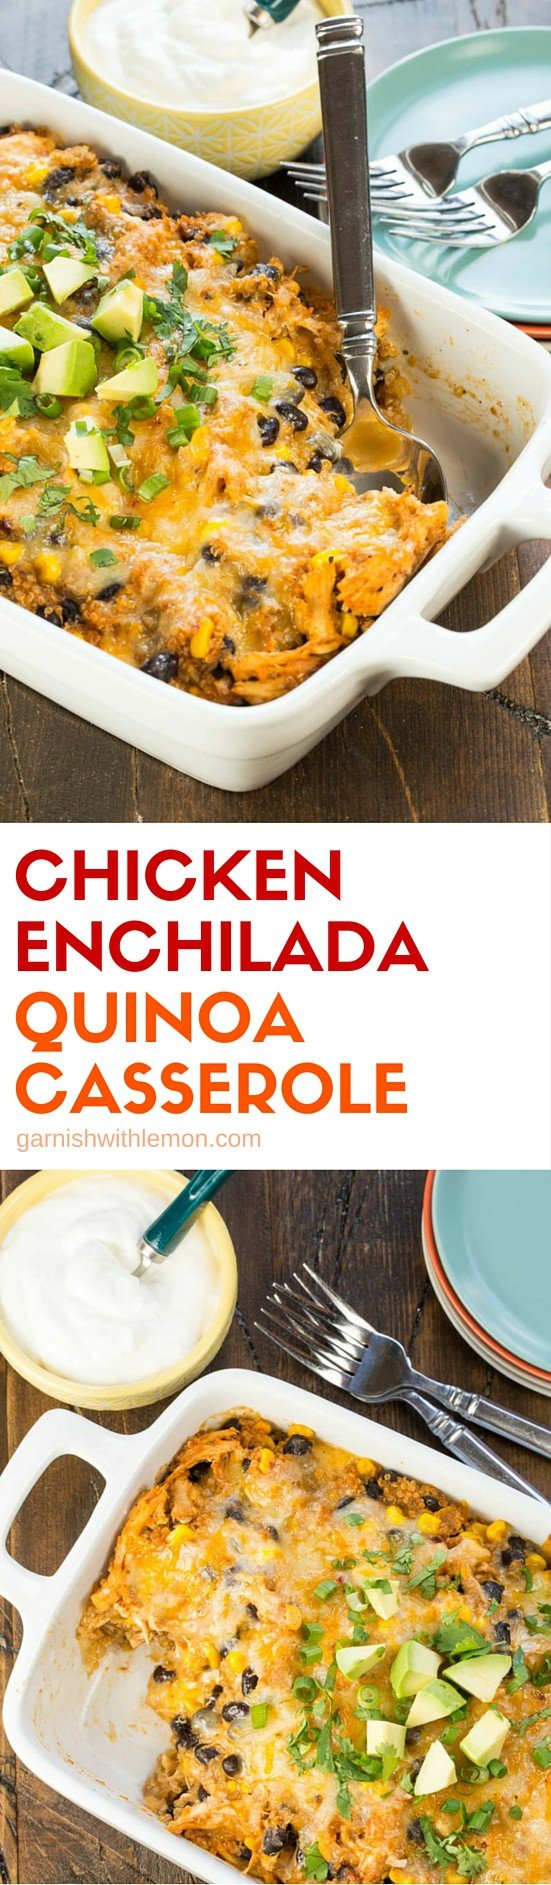 Looking for a protein-rich dinner recipe the whole family will love? This crazy yummy Chicken Enchilada Quinoa Casserole might just become your go-to recipe for weeknight meals.